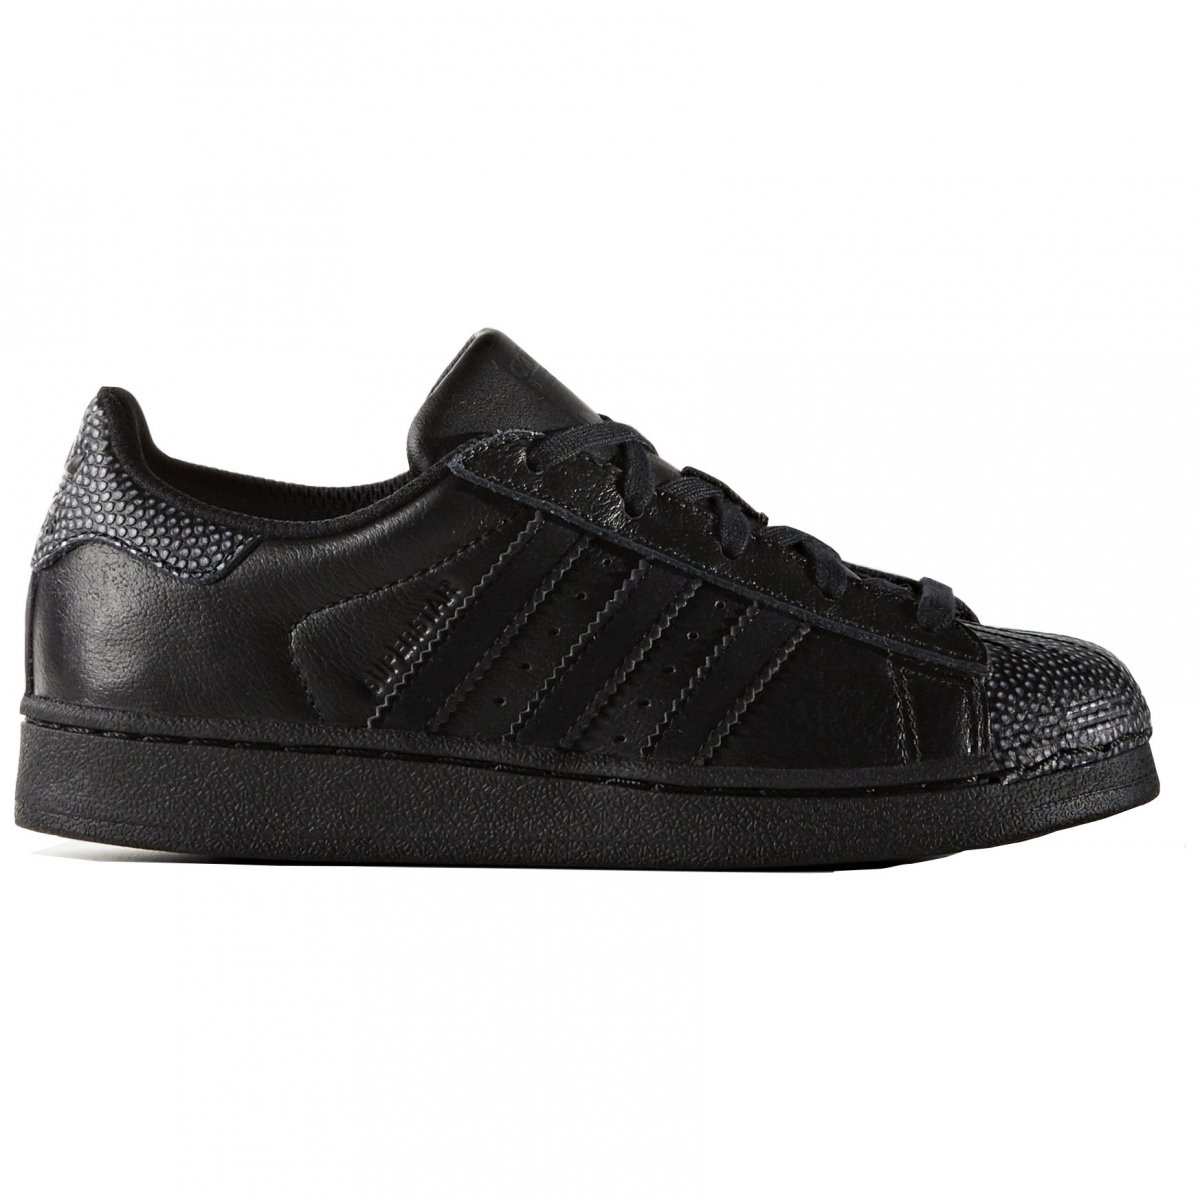 a566e95fc Details about ADIDAS ORIGINALS SUPERSTAR RAY BLACK Boys Kid Shoes Sneakers  C B27521